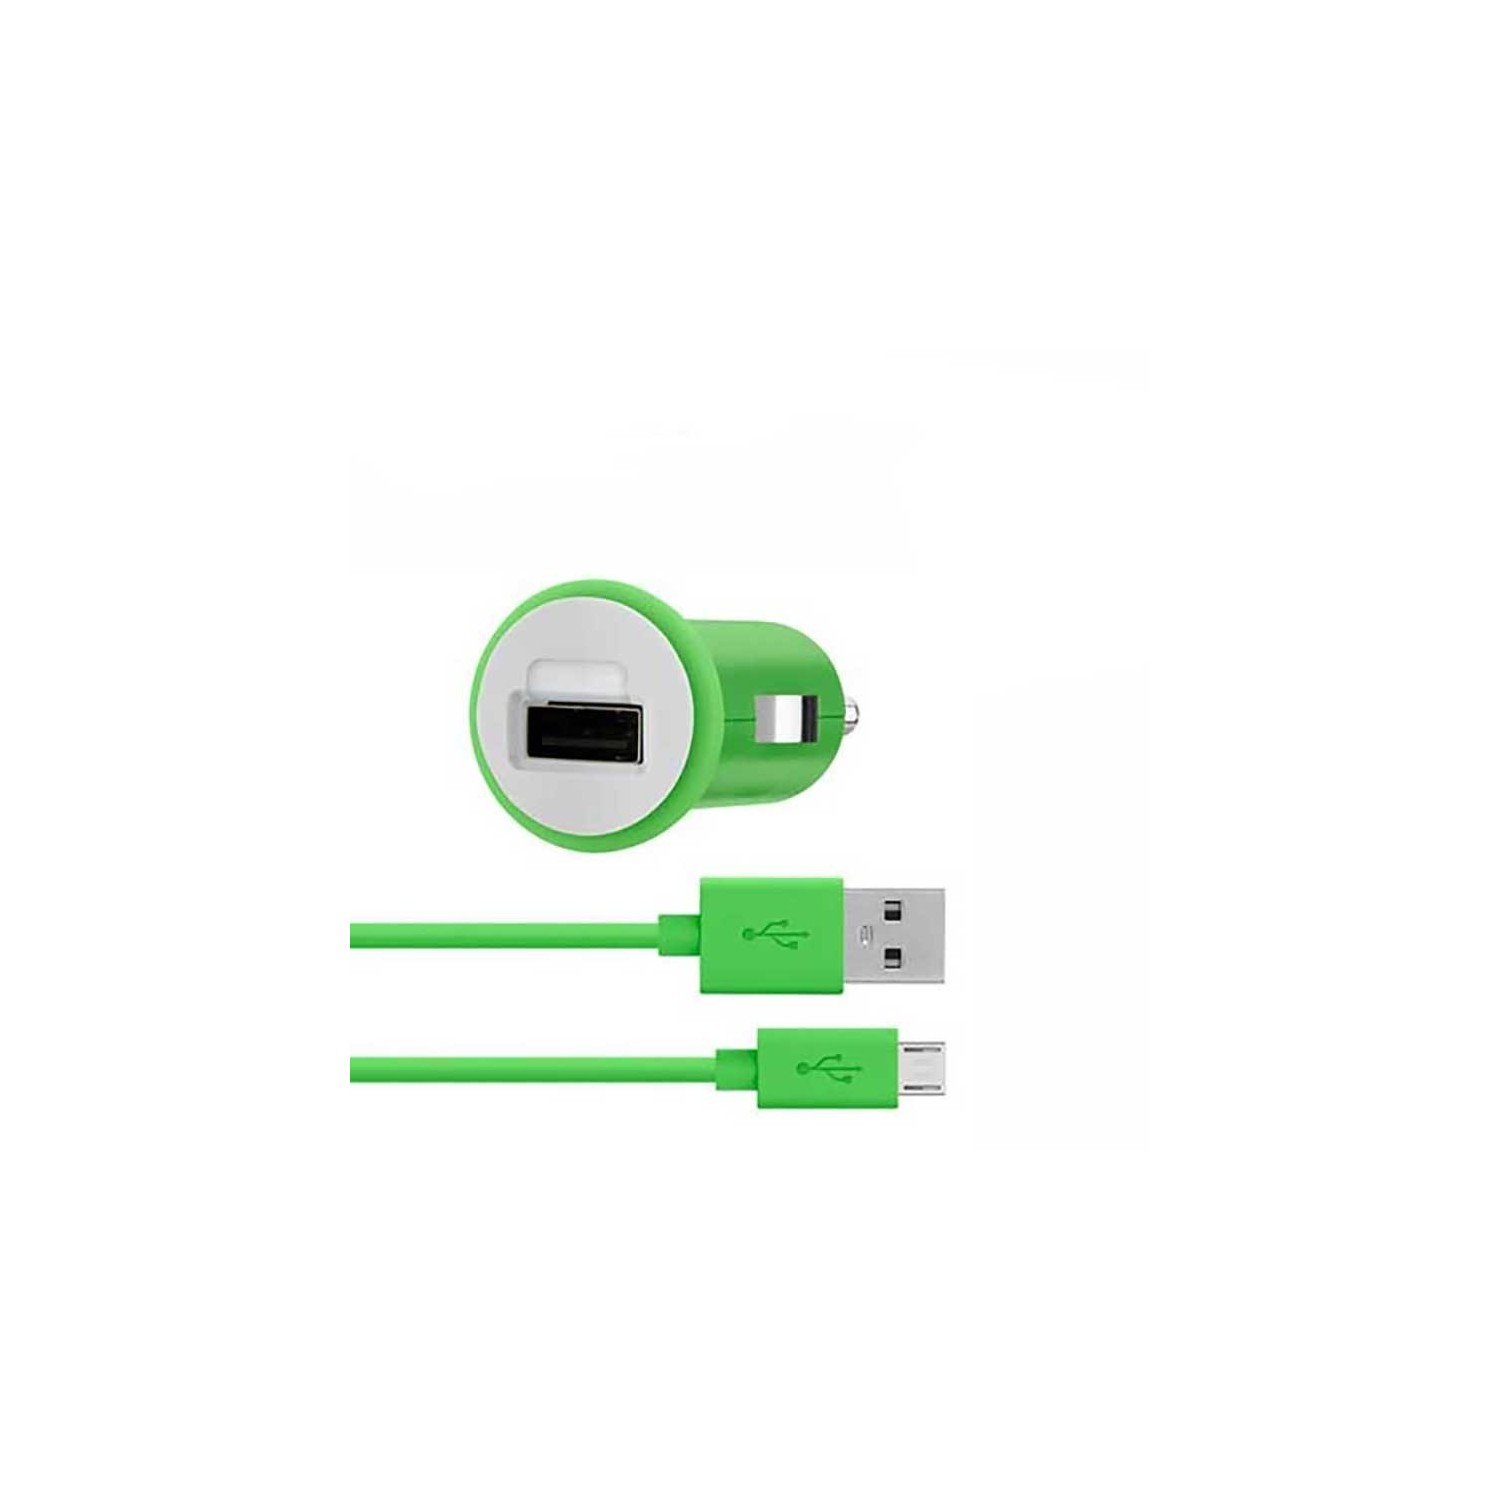 Plug In Charger - Micro USB 2.1 Universal - Green